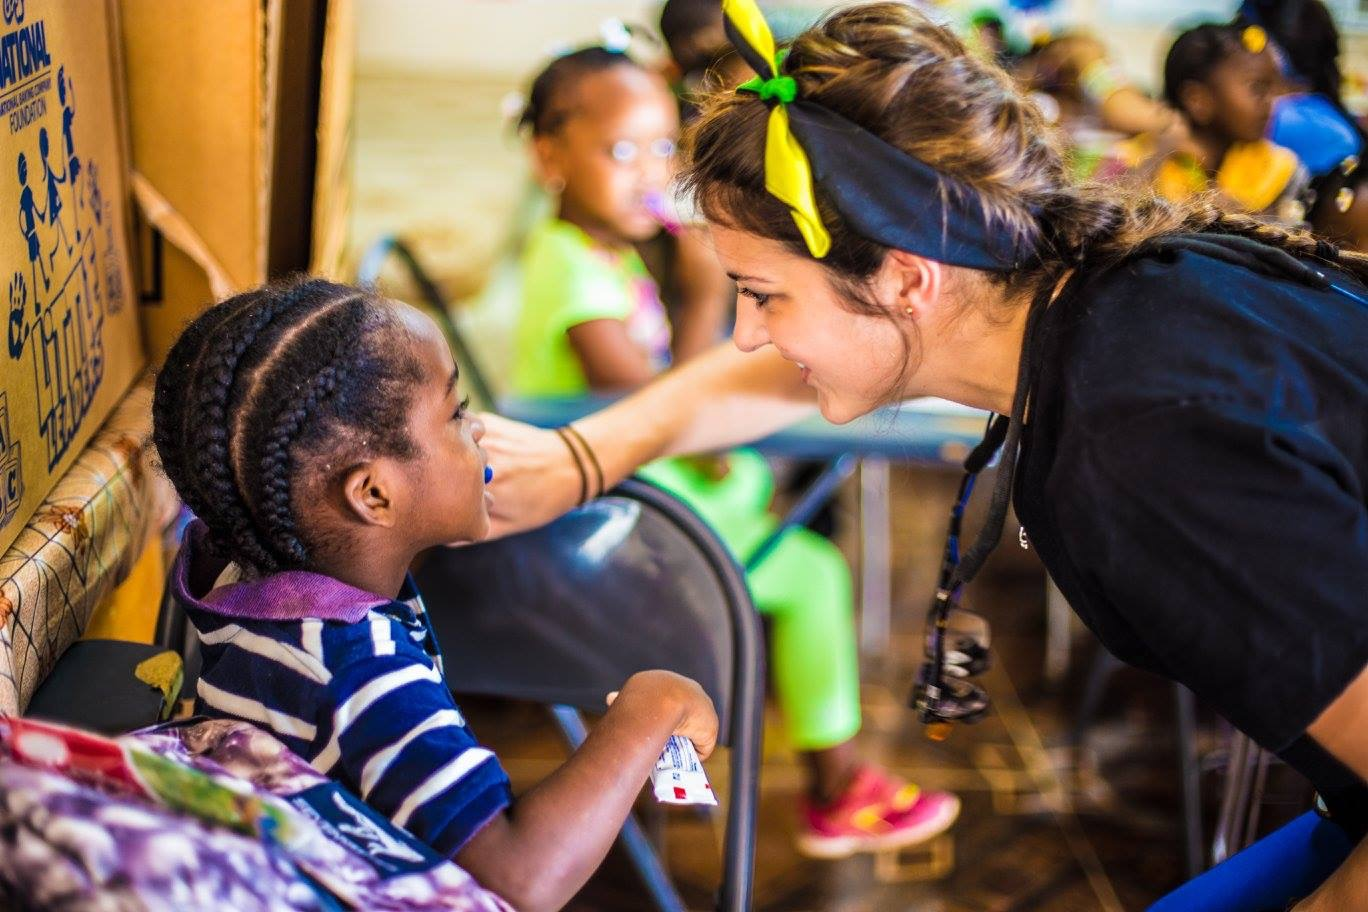 UF College of Dentistry student teaches how to brush teeth at the Bahamas mission trip.